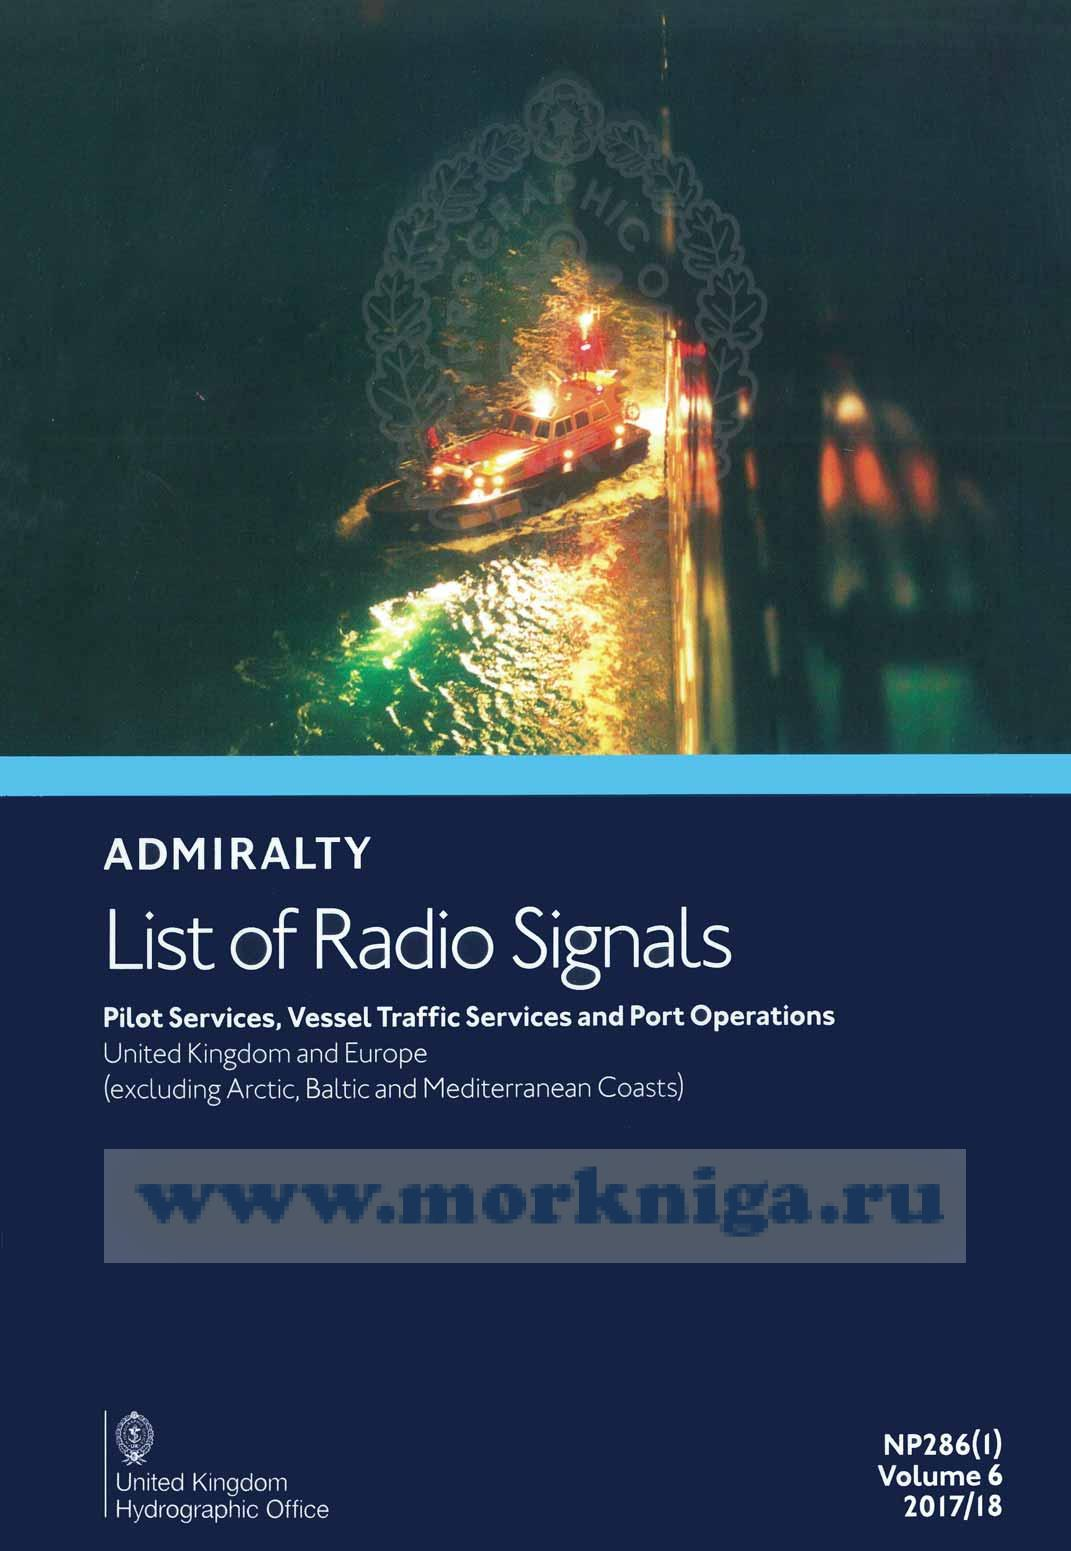 Admiralty list of radio signals. Vol 6. NP286(1) (ALRS). Pilot servises, vessel traffio, servises and port operation. United Kingdom and Europe (excluding Arctic, Baltic and Mediterranean coasts).  2017/2018